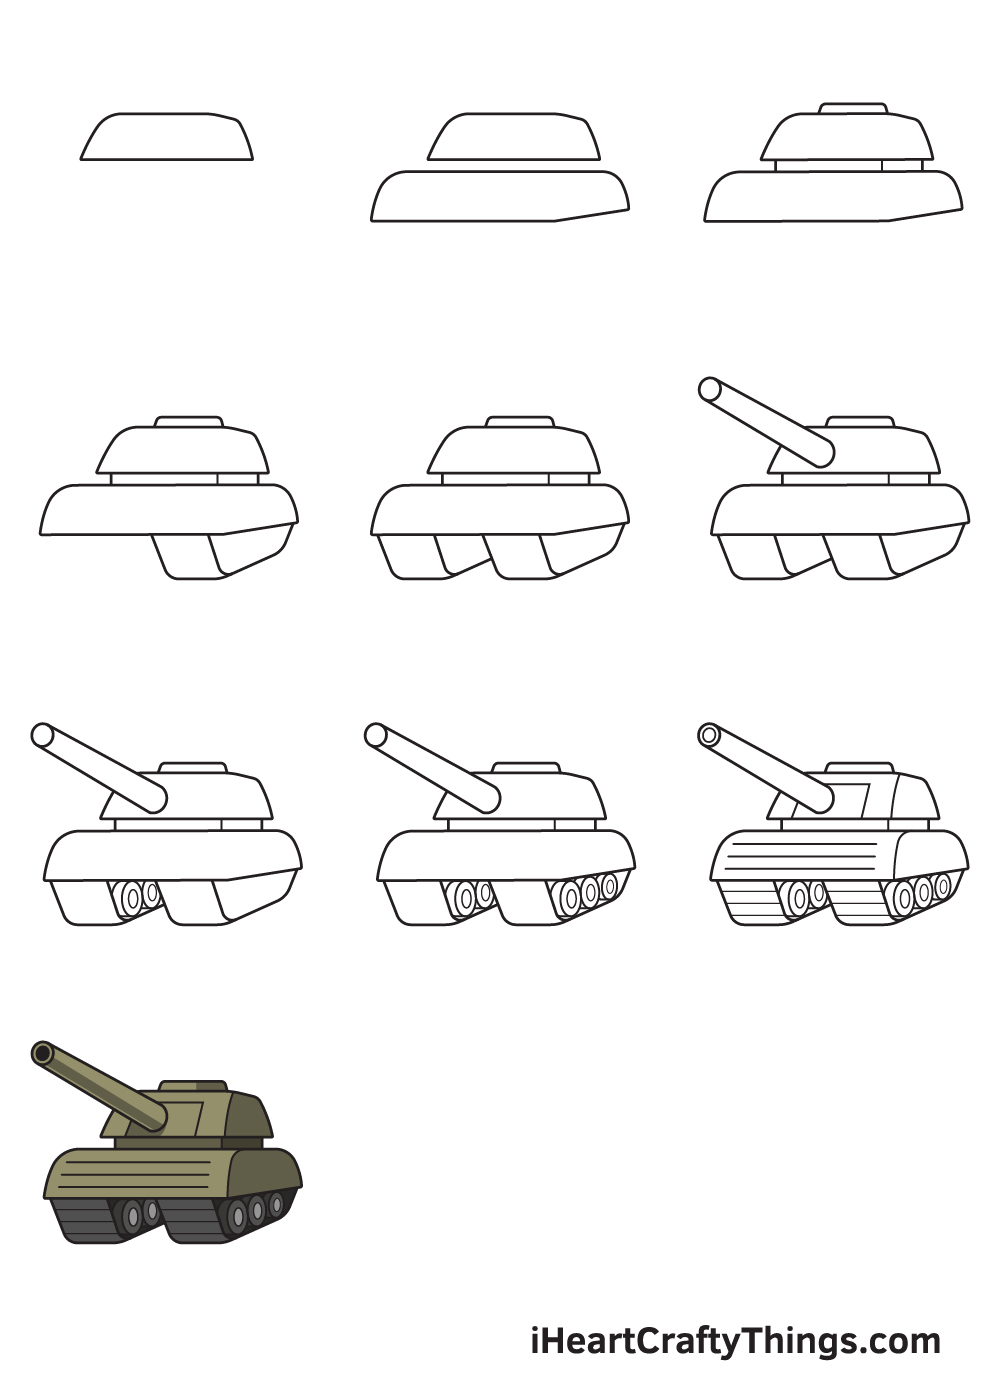 drawing tank in 9 steps